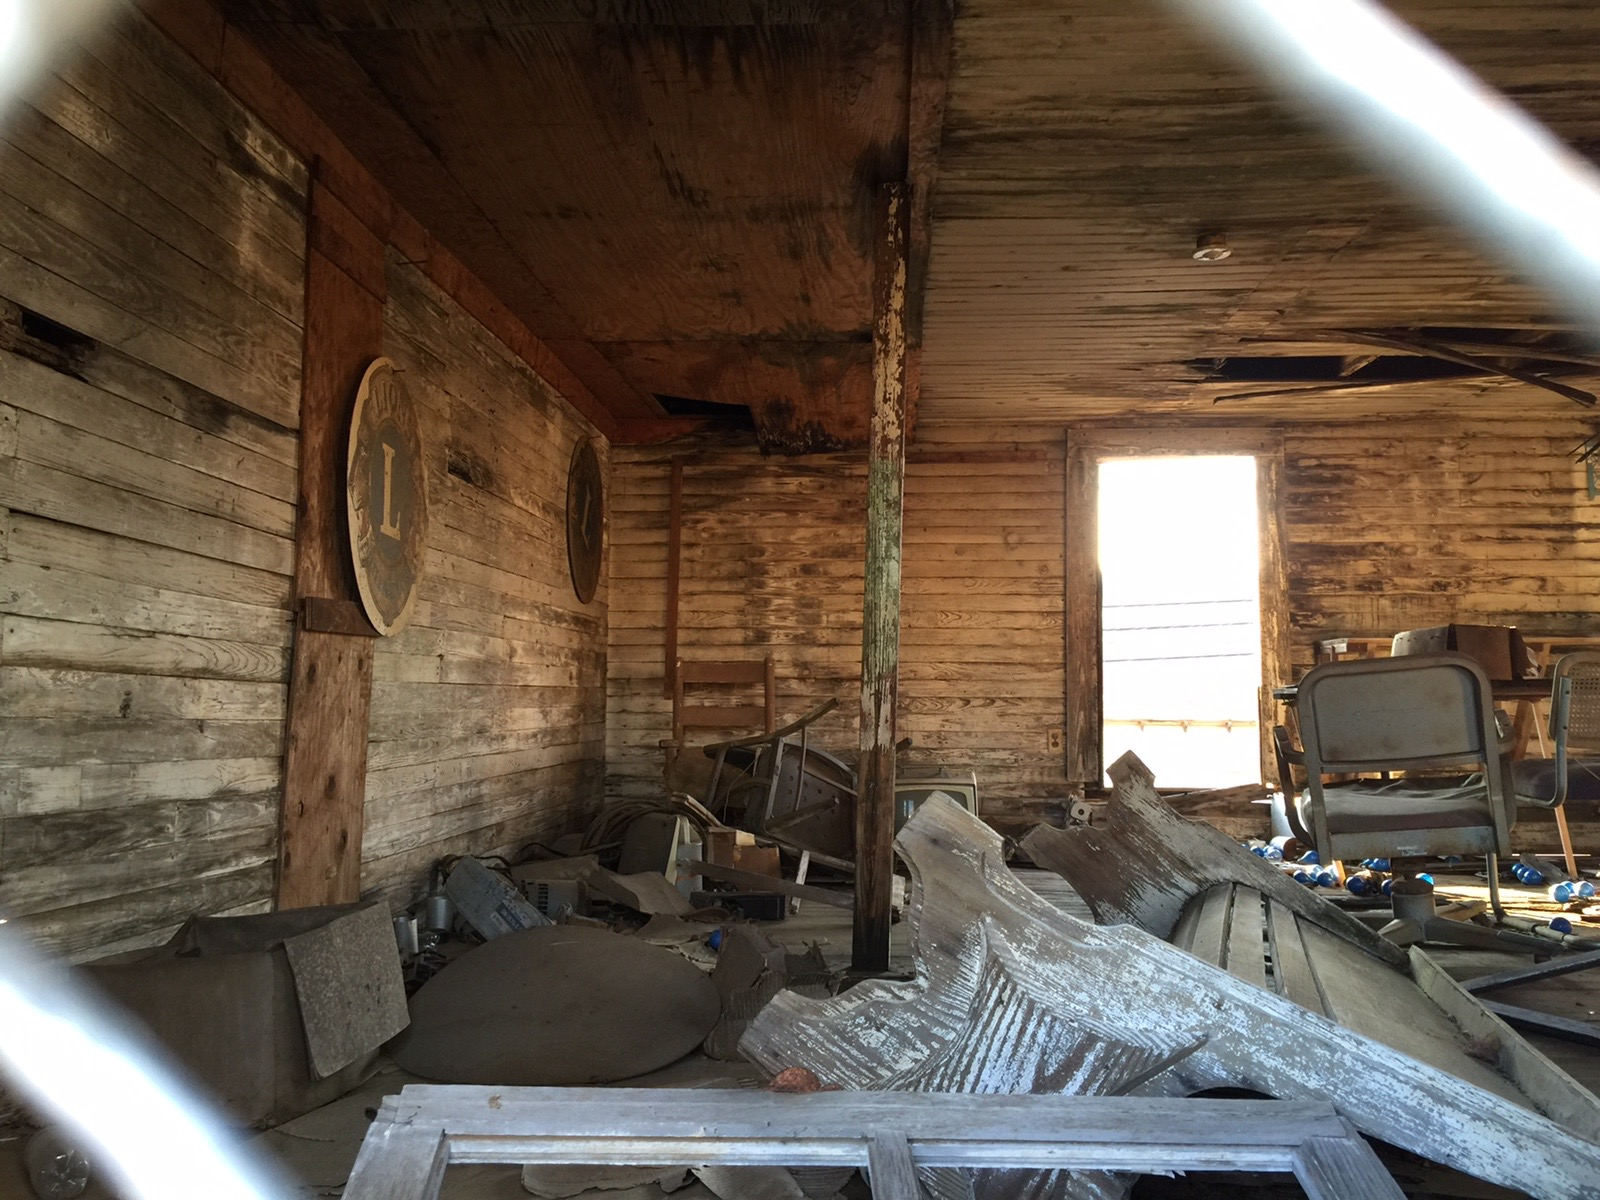 Second floor interior October 2015. Photo by Sam Higdon.